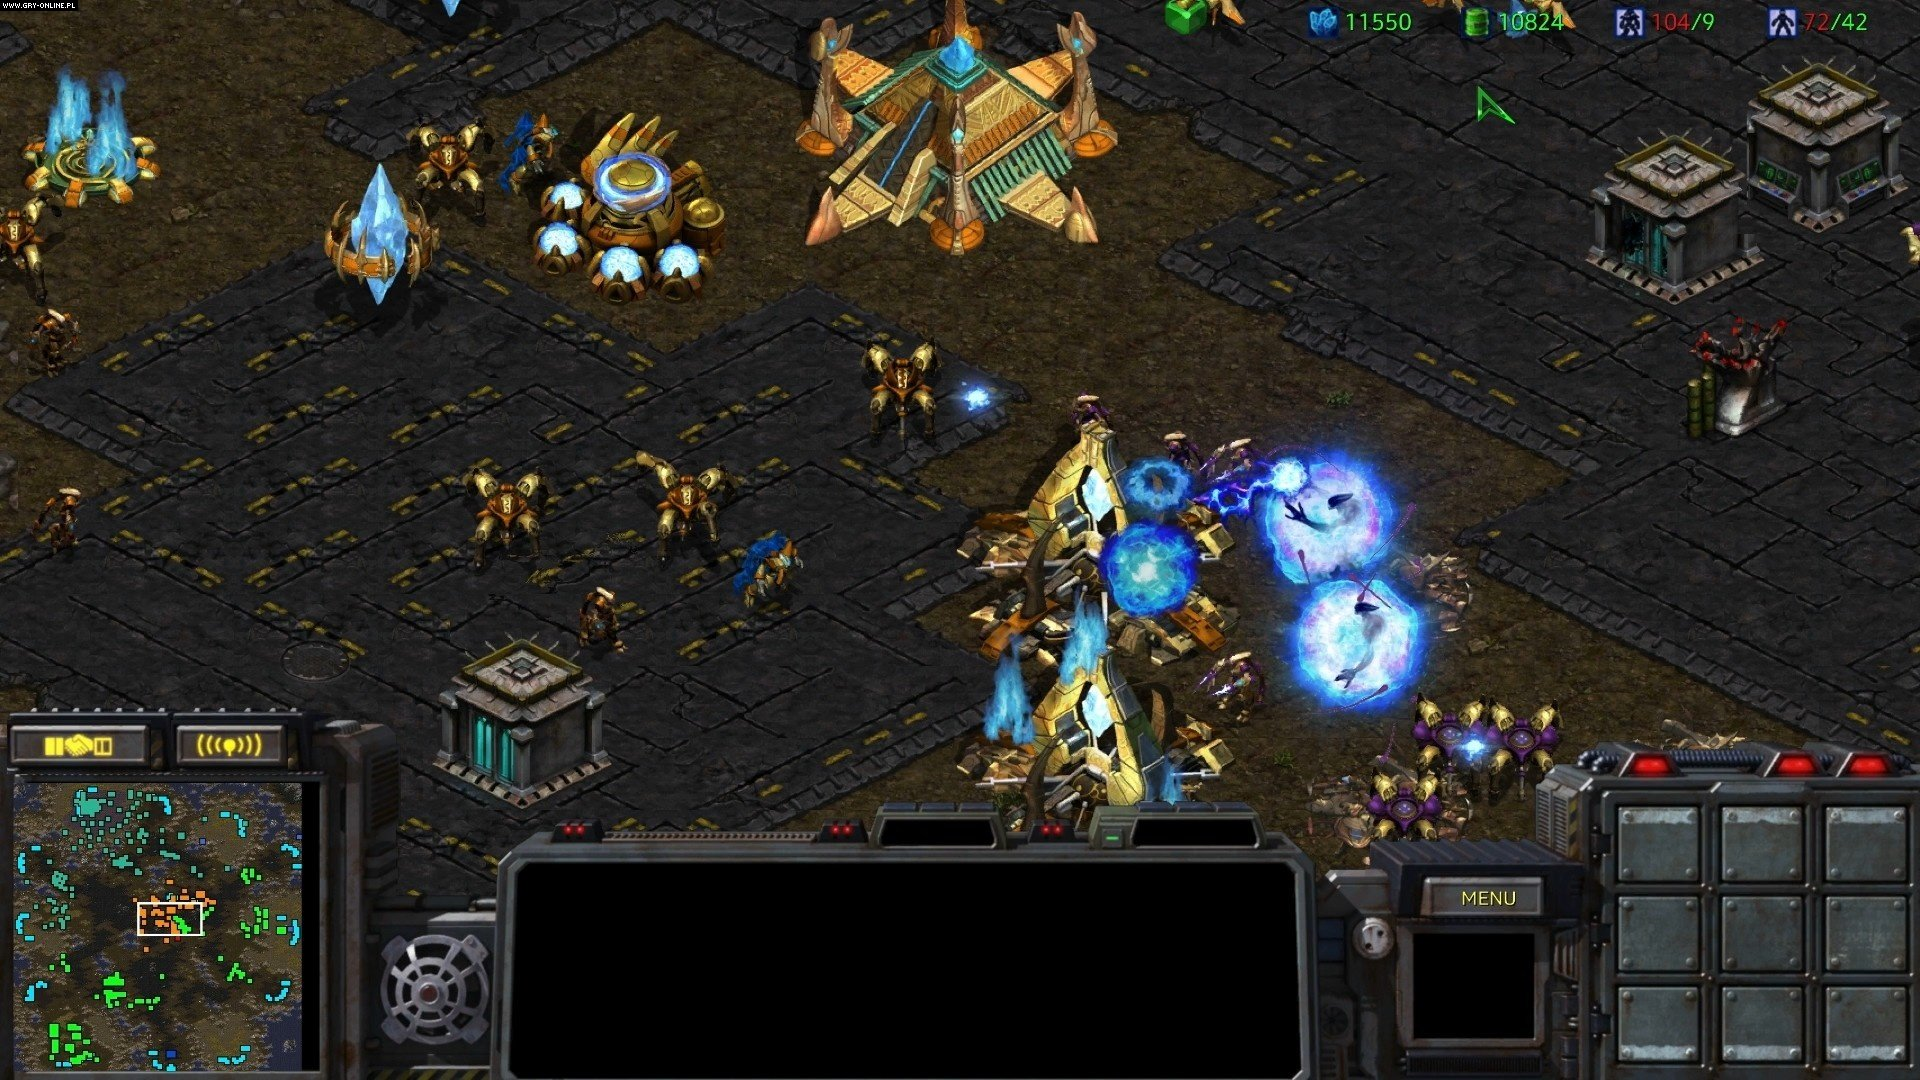 StarCraft: Remastered PC Games Image 2/15, Blizzard Entertainment